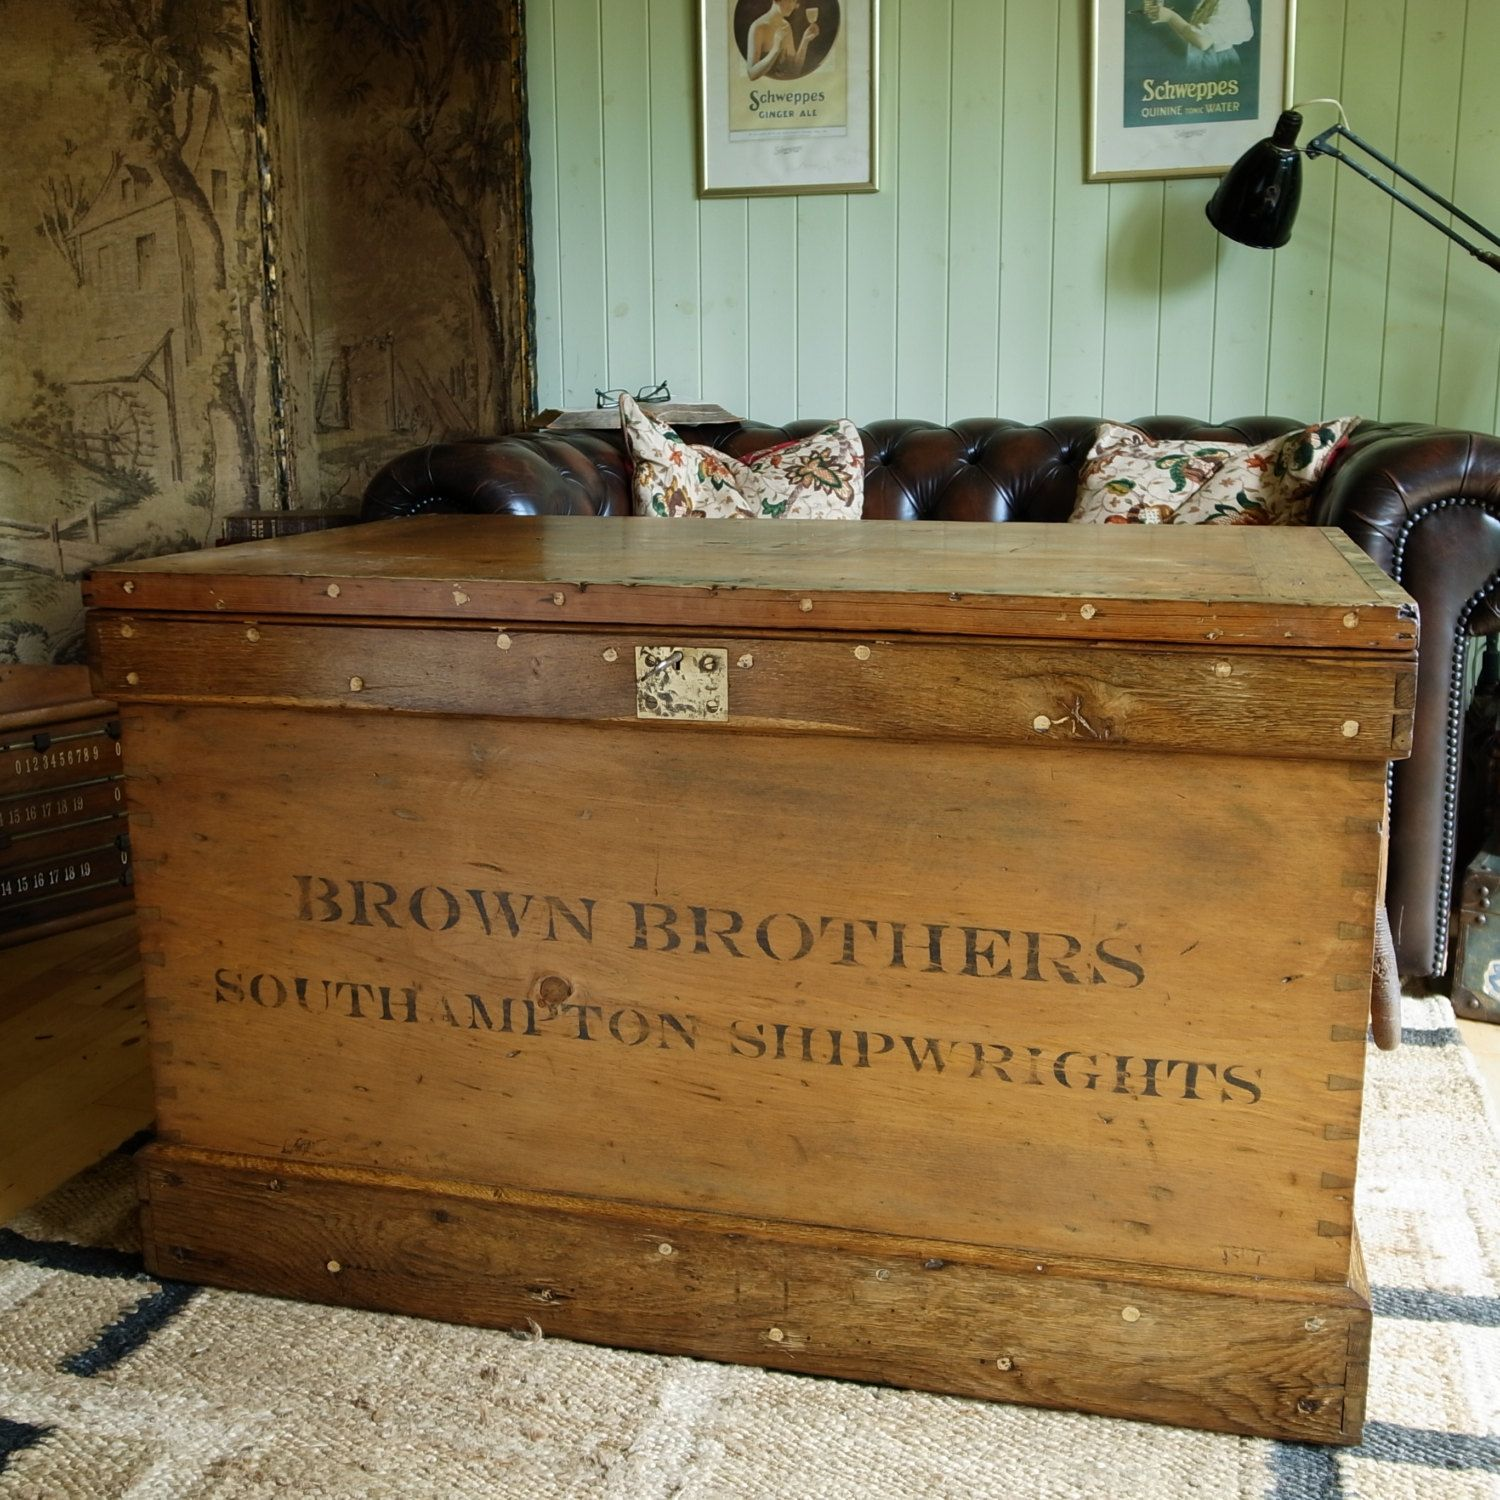 Pine Coffee Table Trunk: ANTIQUE VICTORIAN CHEST Rustic Sea Chest Coffee Table